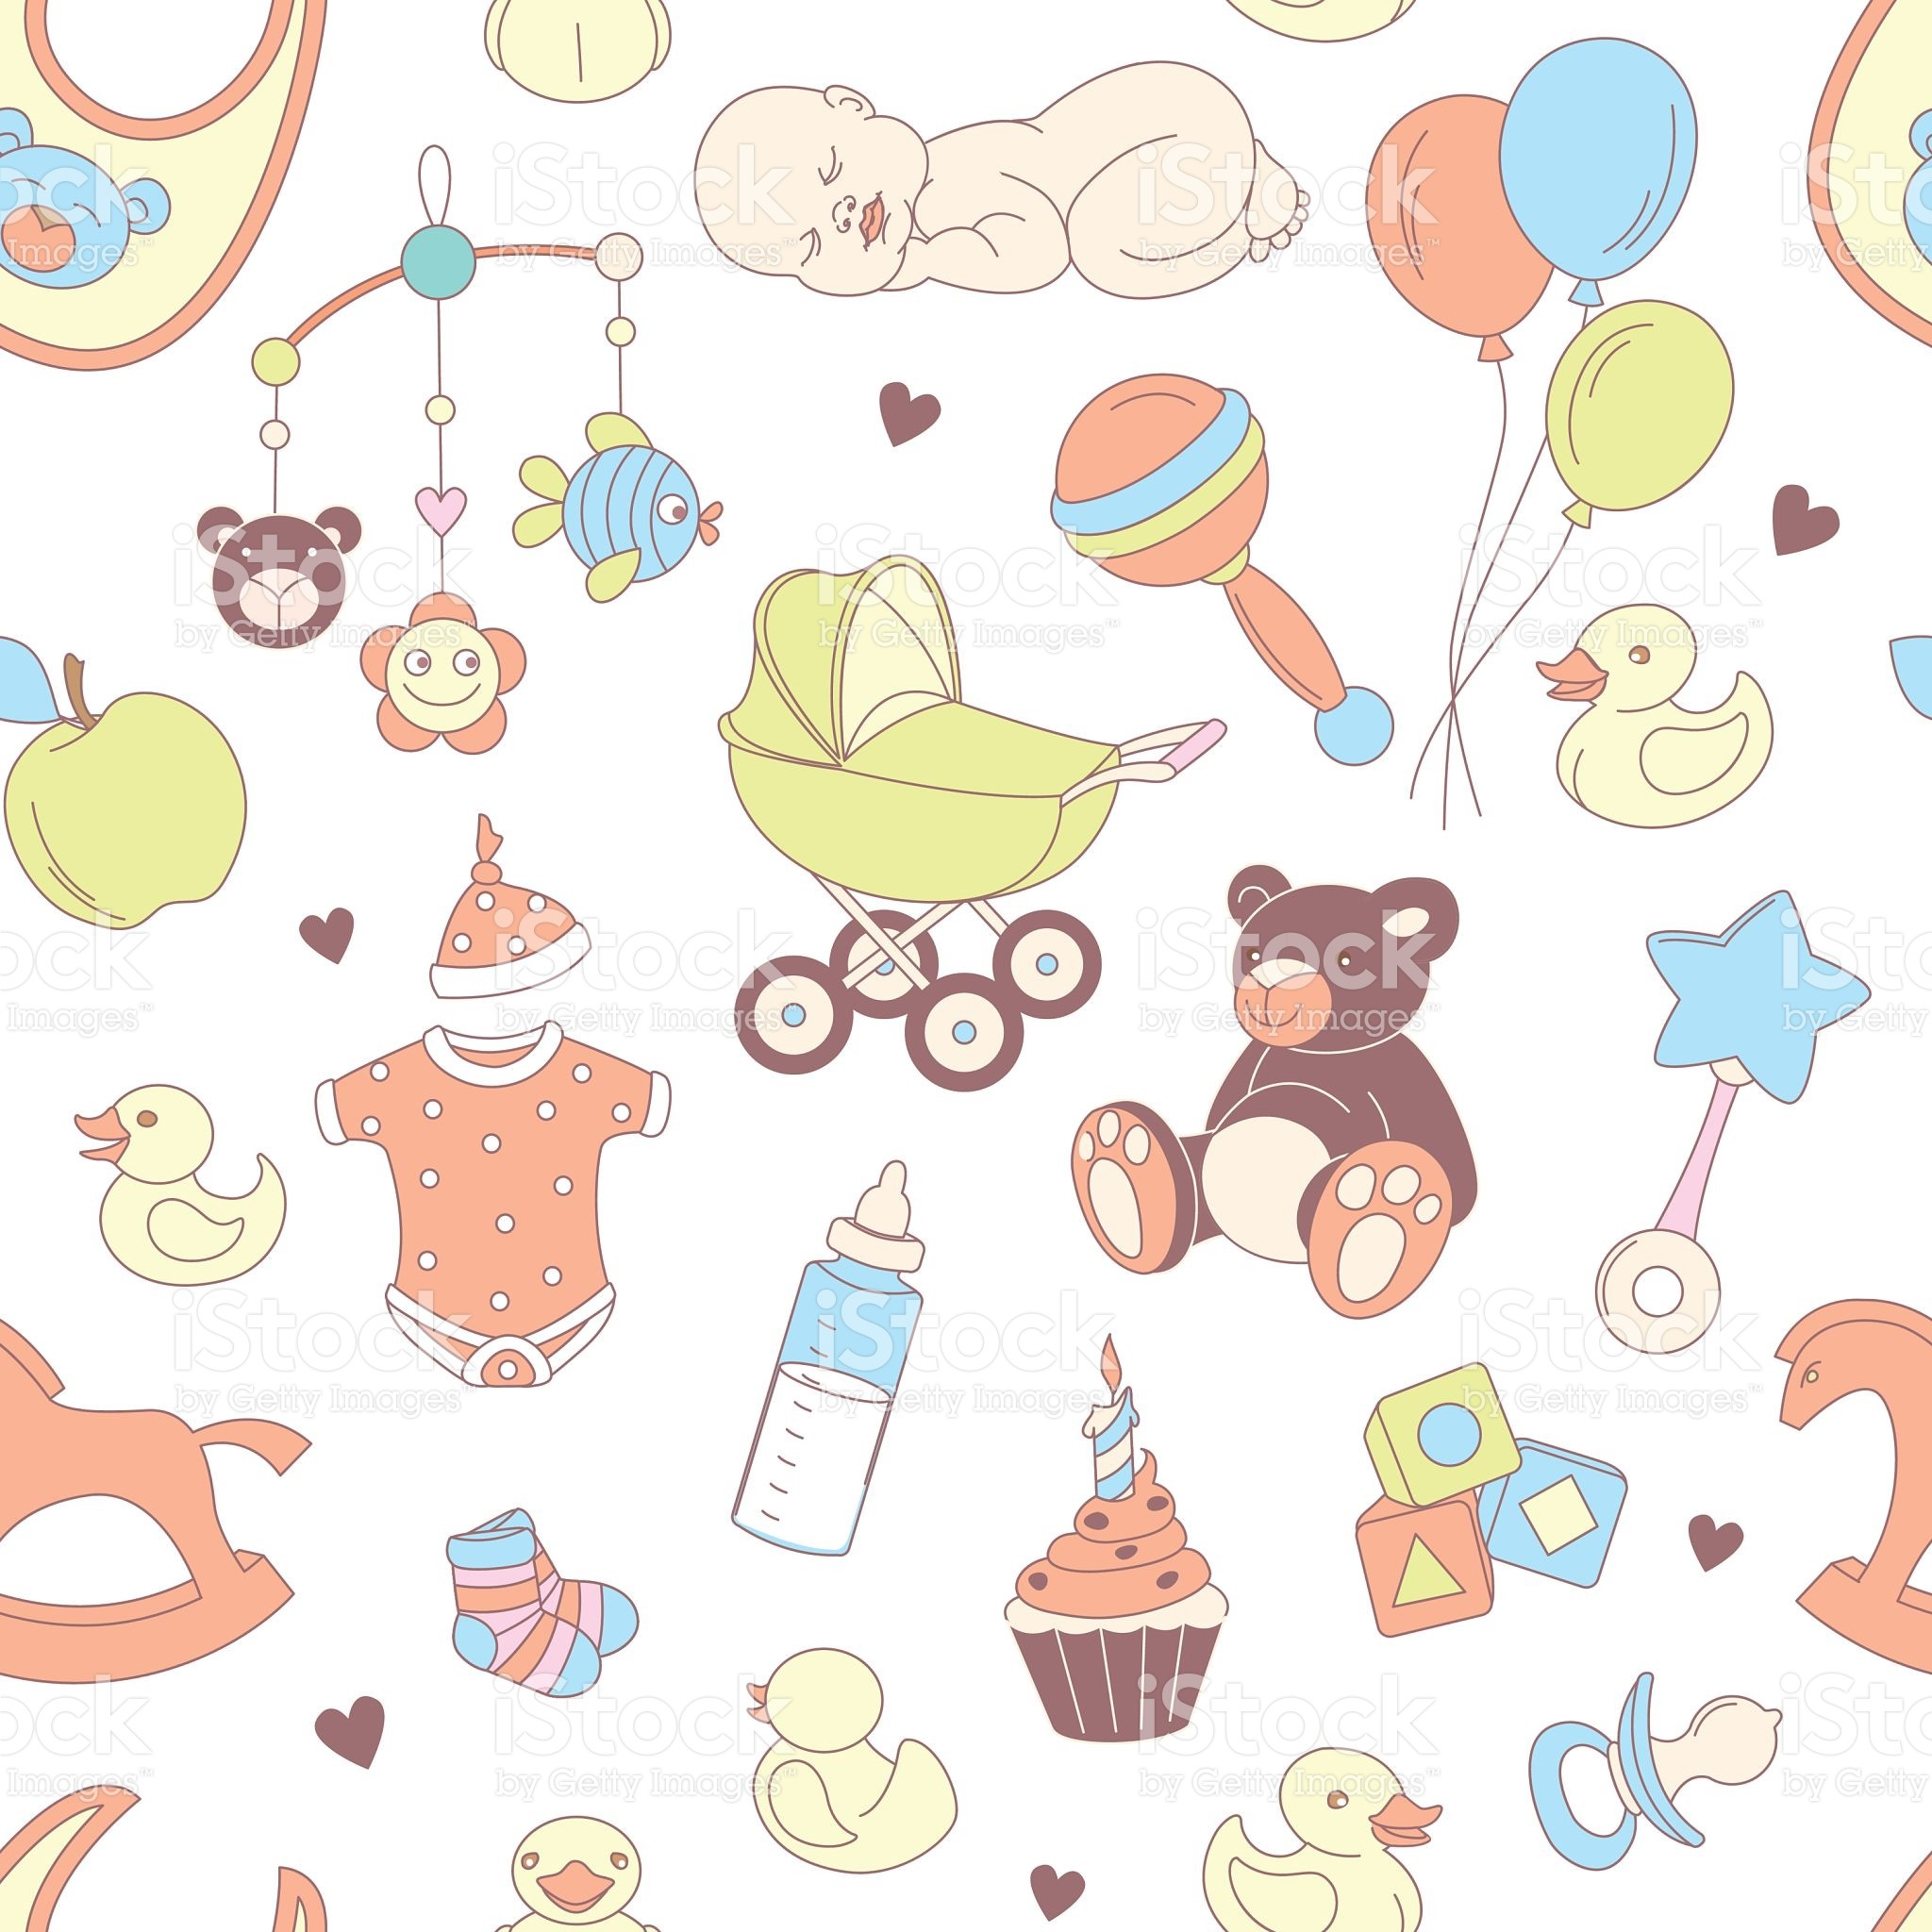 Baby Boy Wallpaper Patterns 183 ①